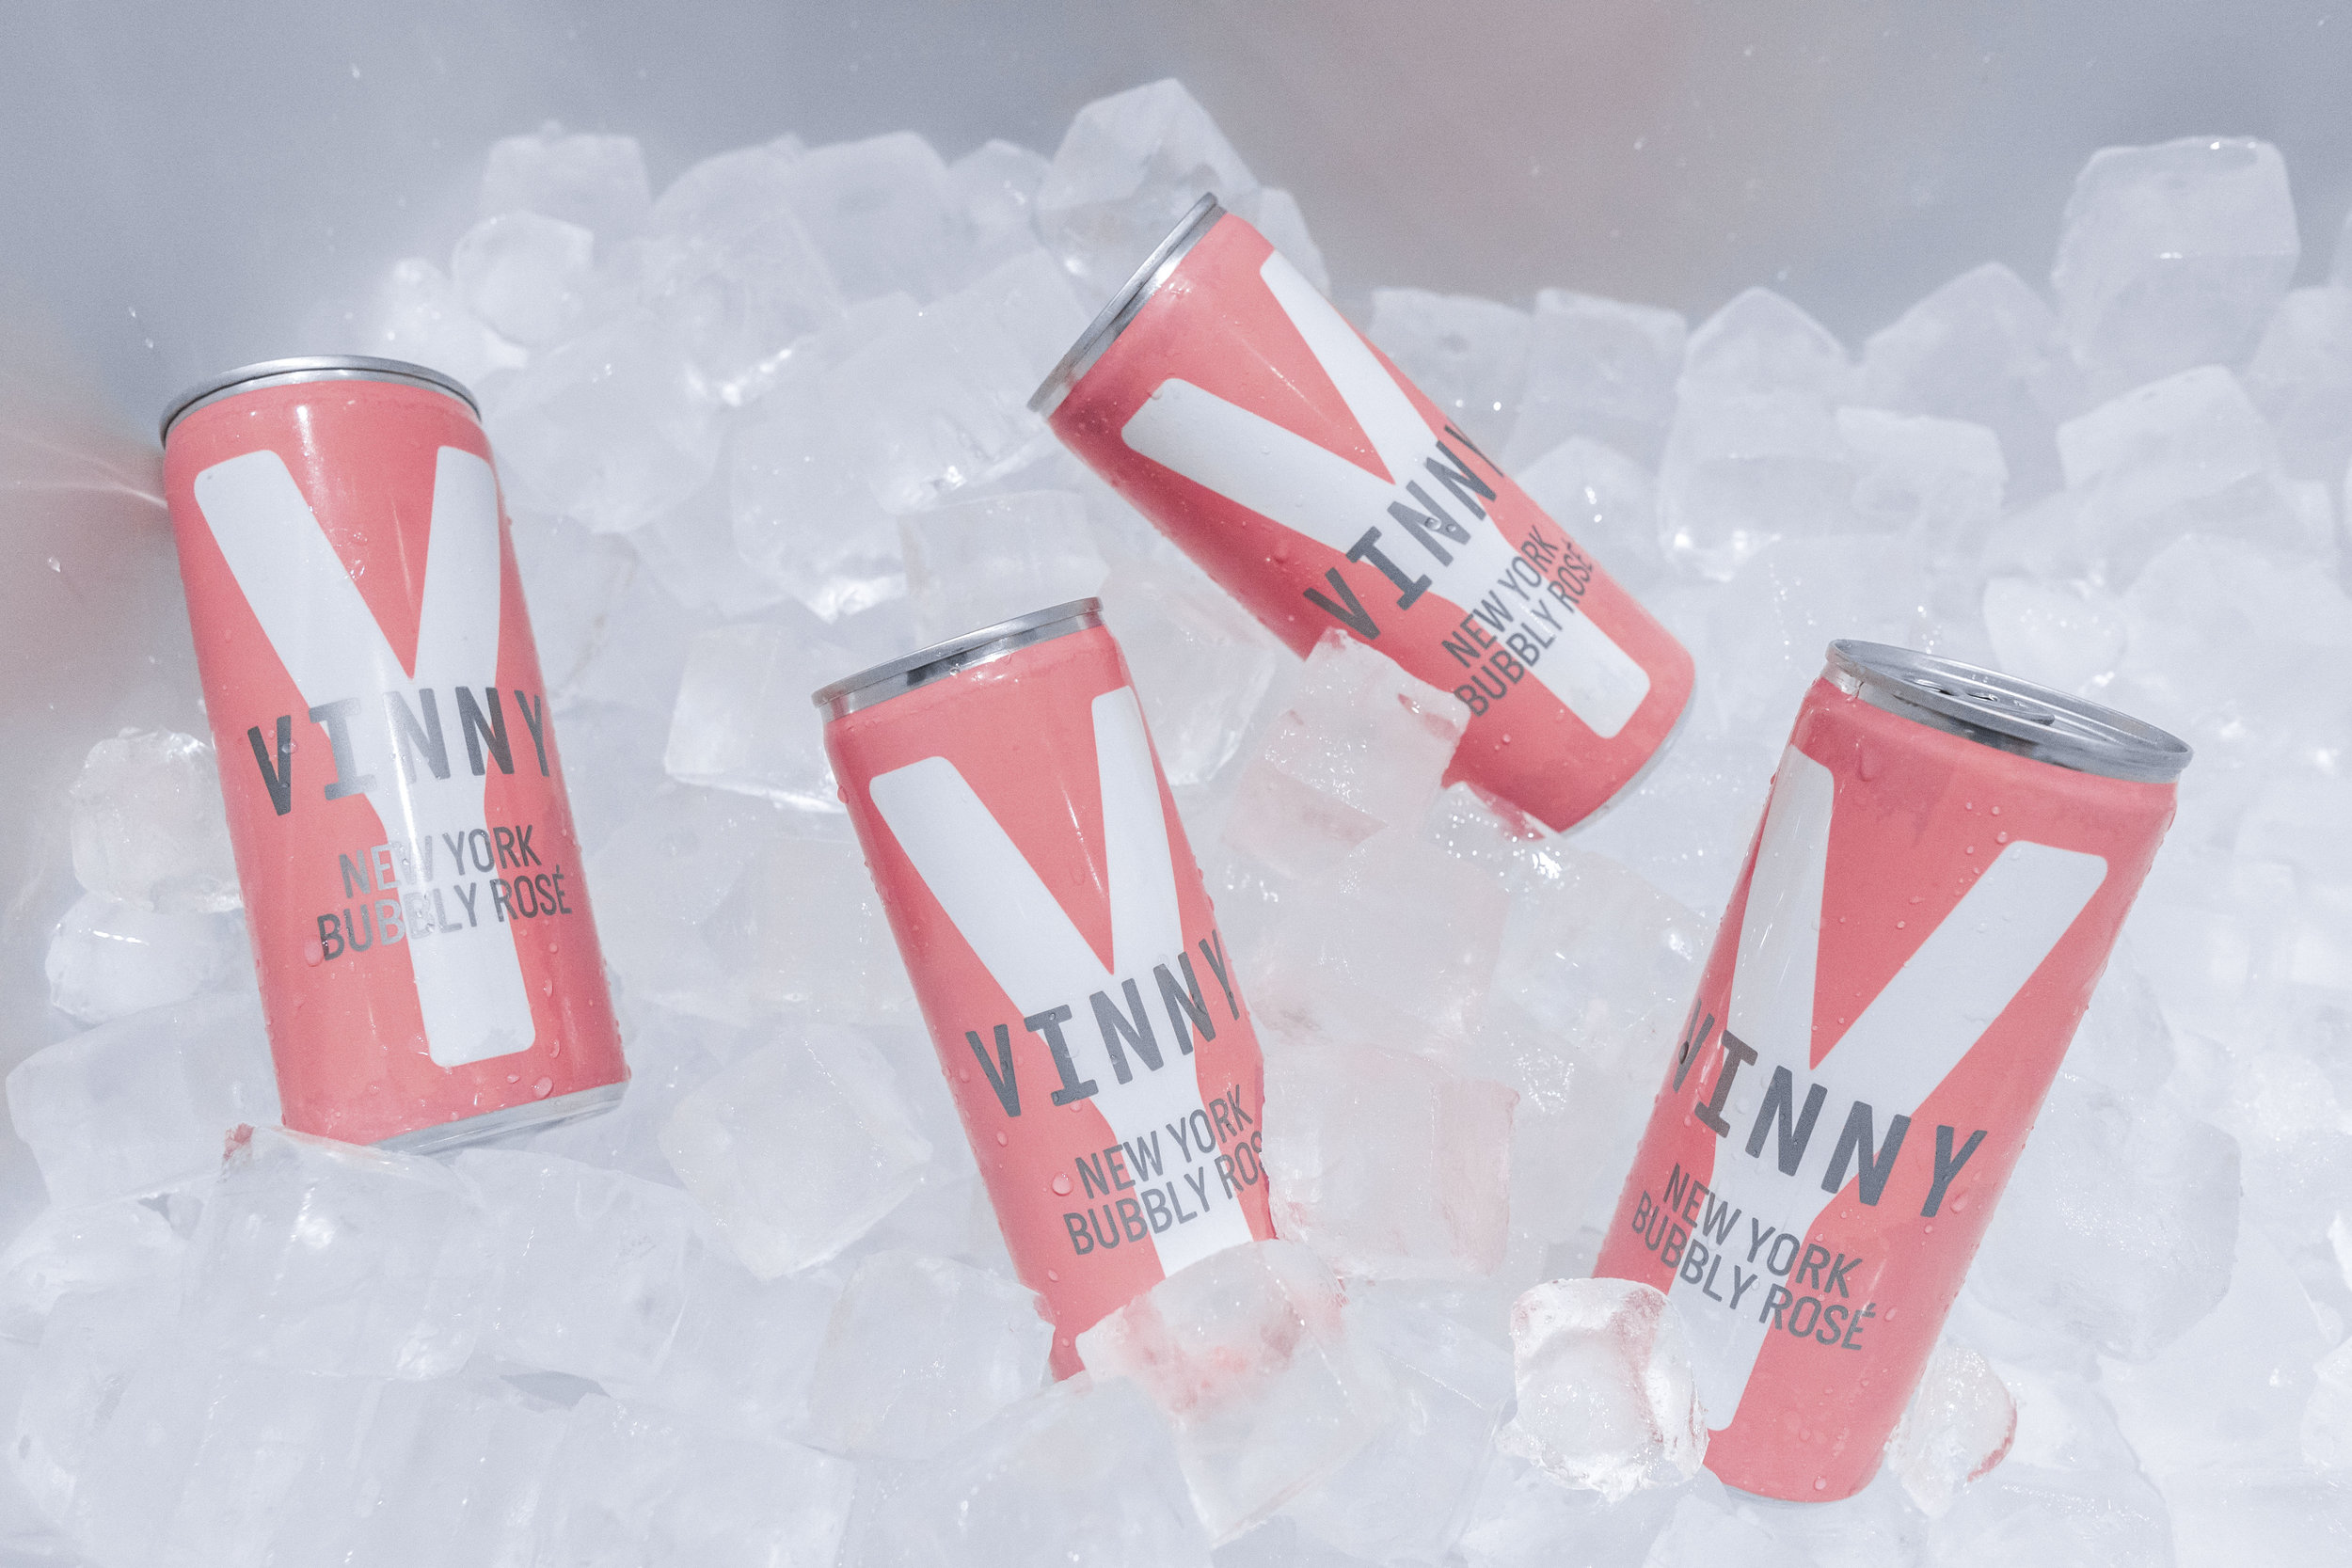 Vinny Canned Rosé - Light bubbles bursting with strawberry peach and a touch of citrus lemon.